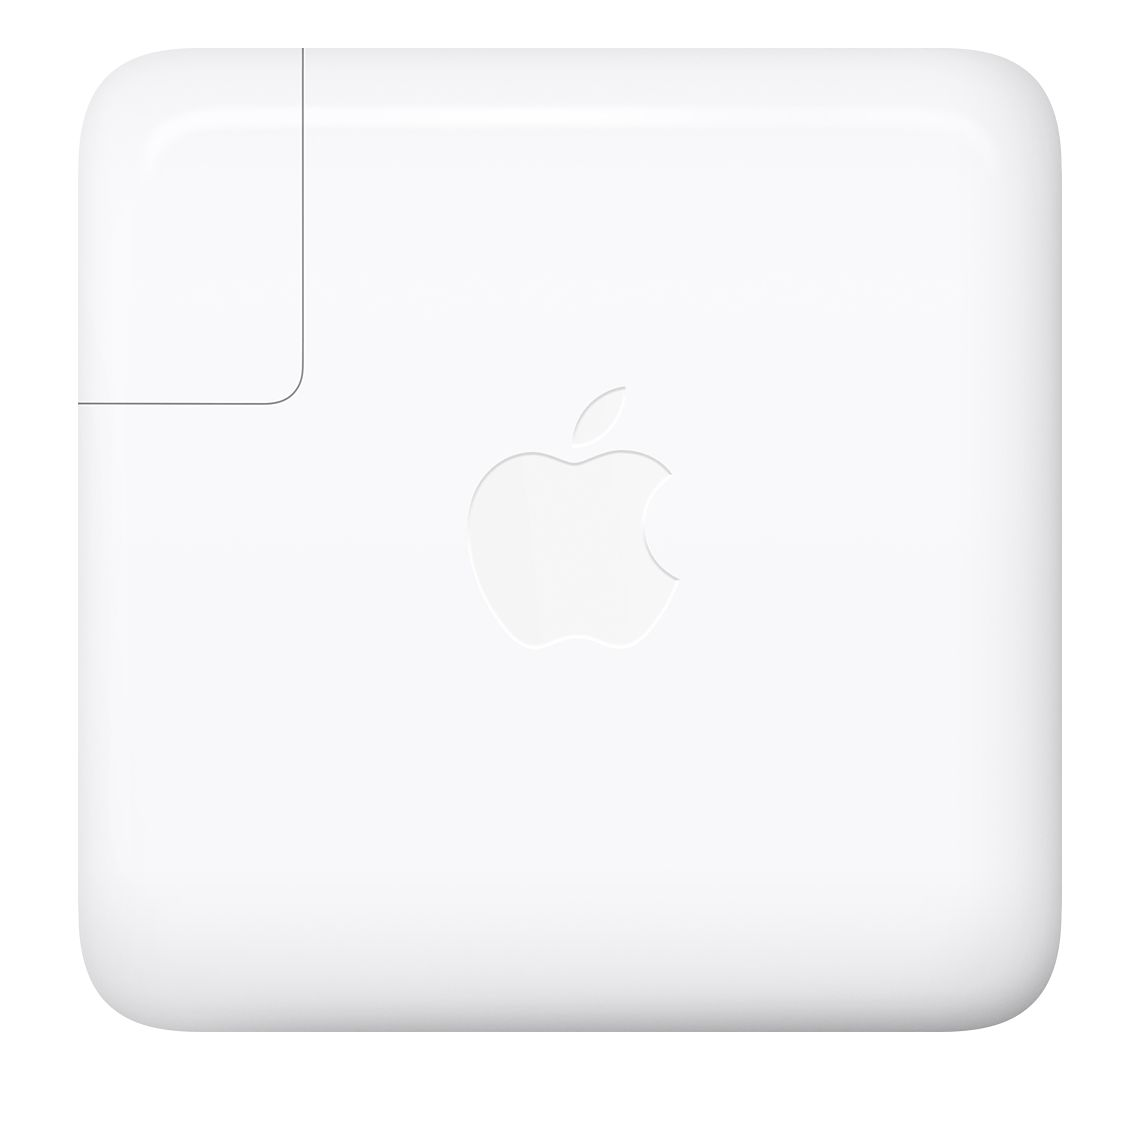 Genuine Apple 87W USB-C Power Adapter Charger for new Macbook Pro 15inch